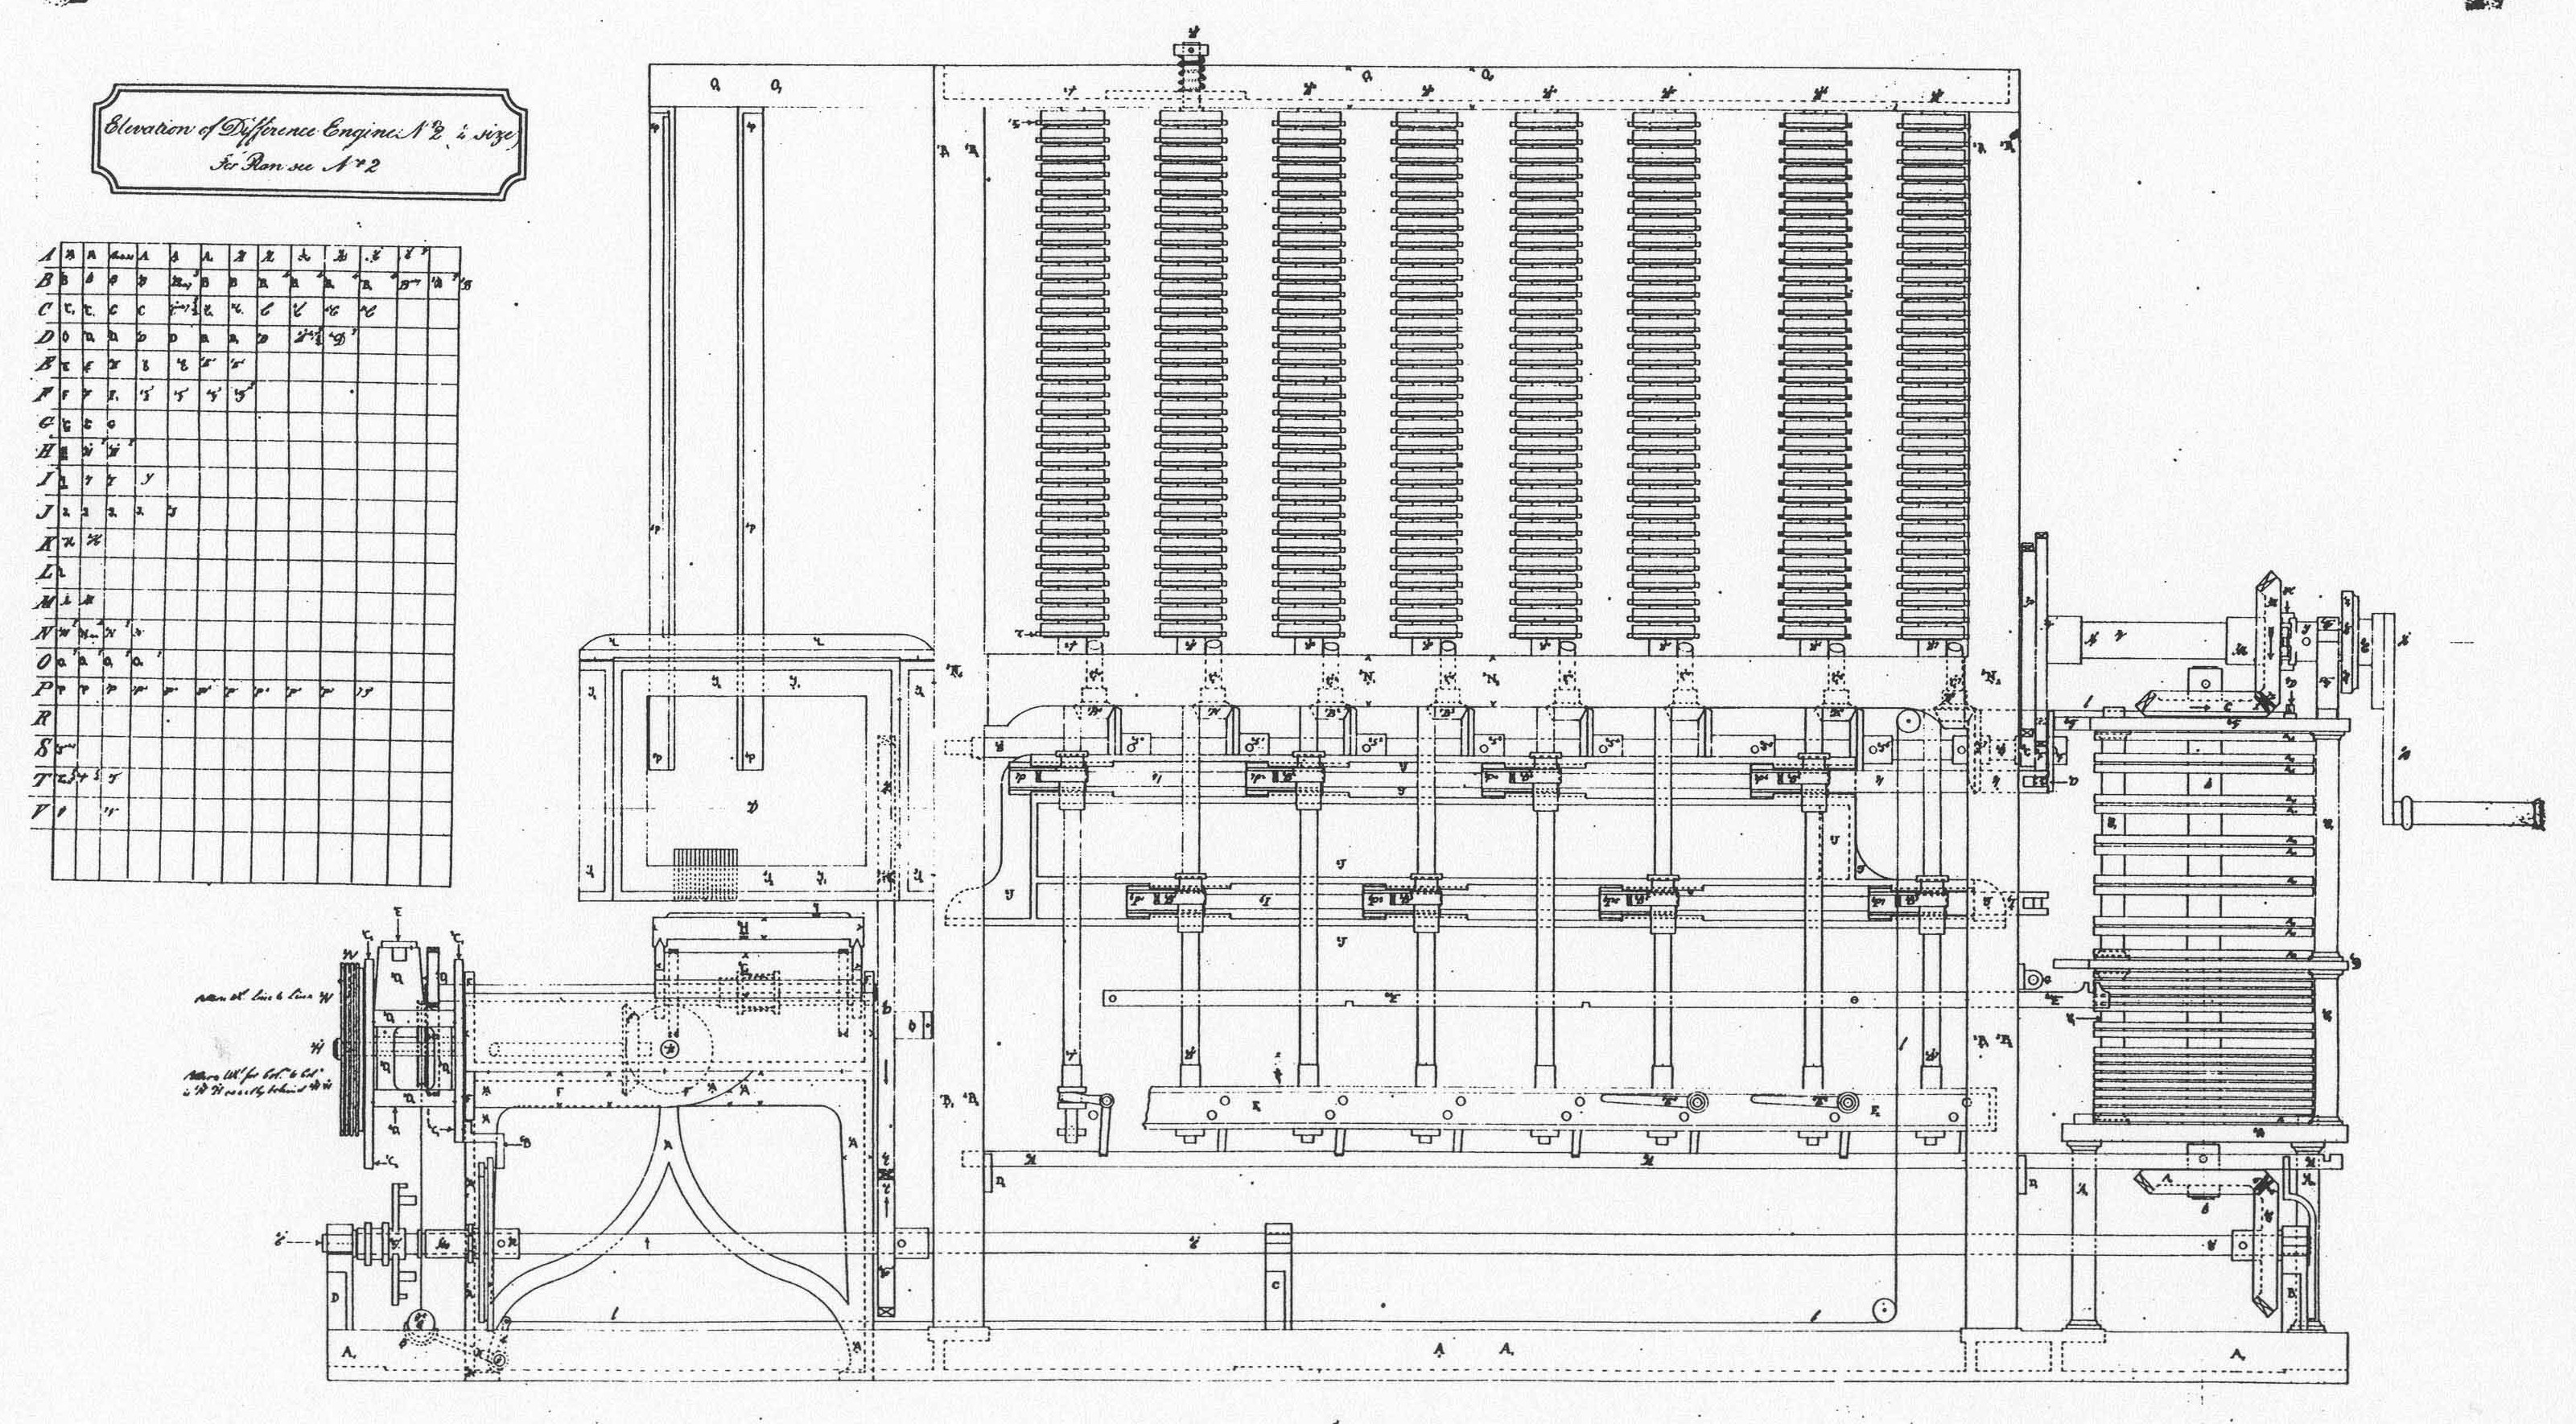 Babbage Analytical Engine Diagram Difference Engine 9000